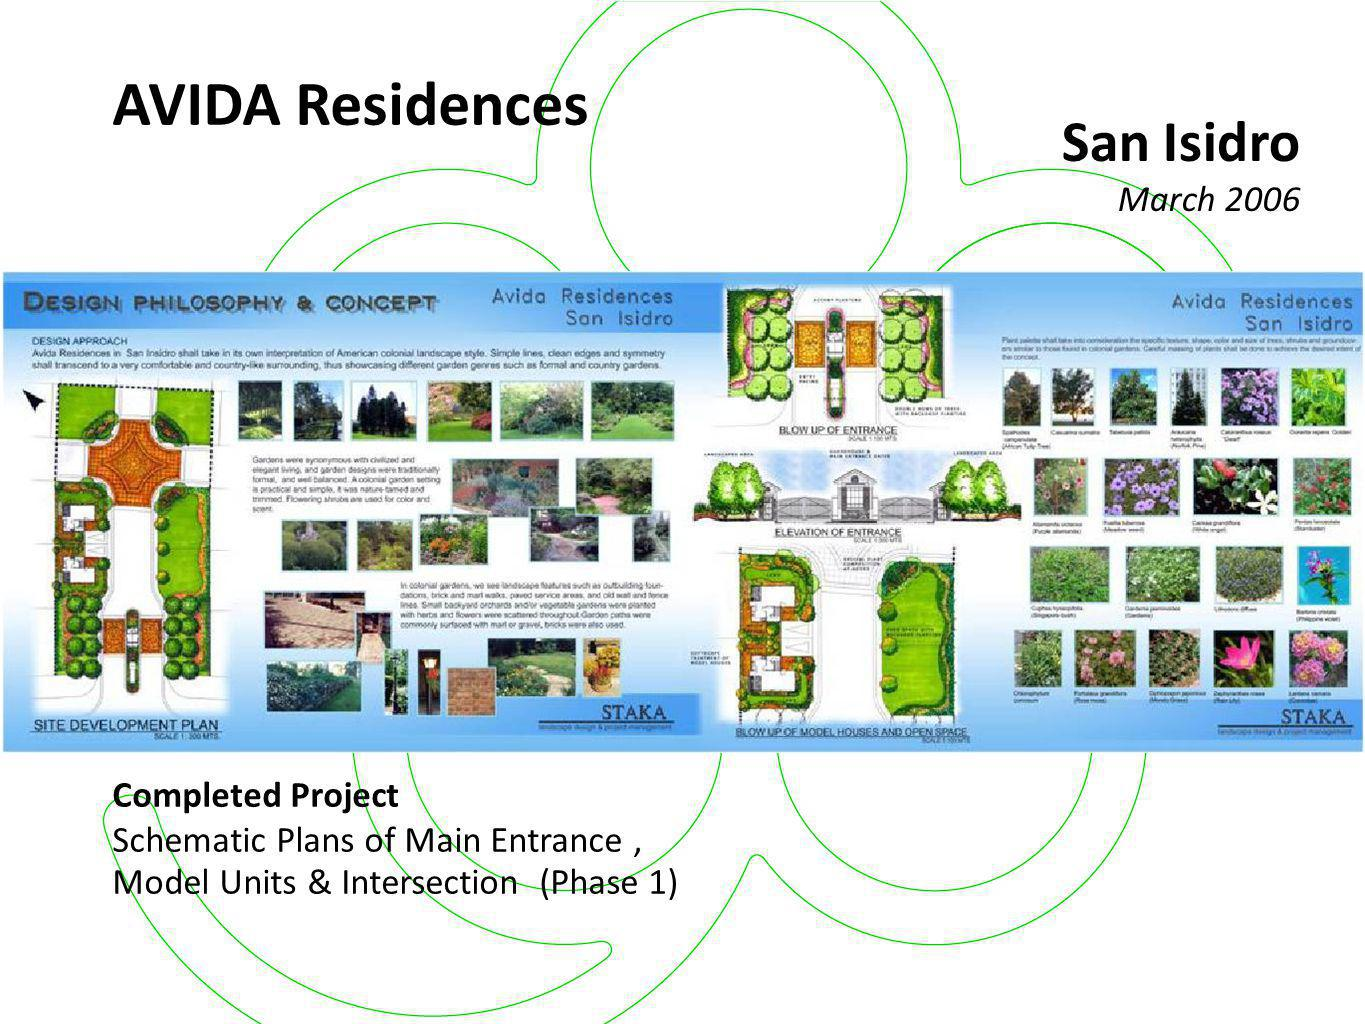 AVIDA Residences San Isidro March 2006 Completed Project